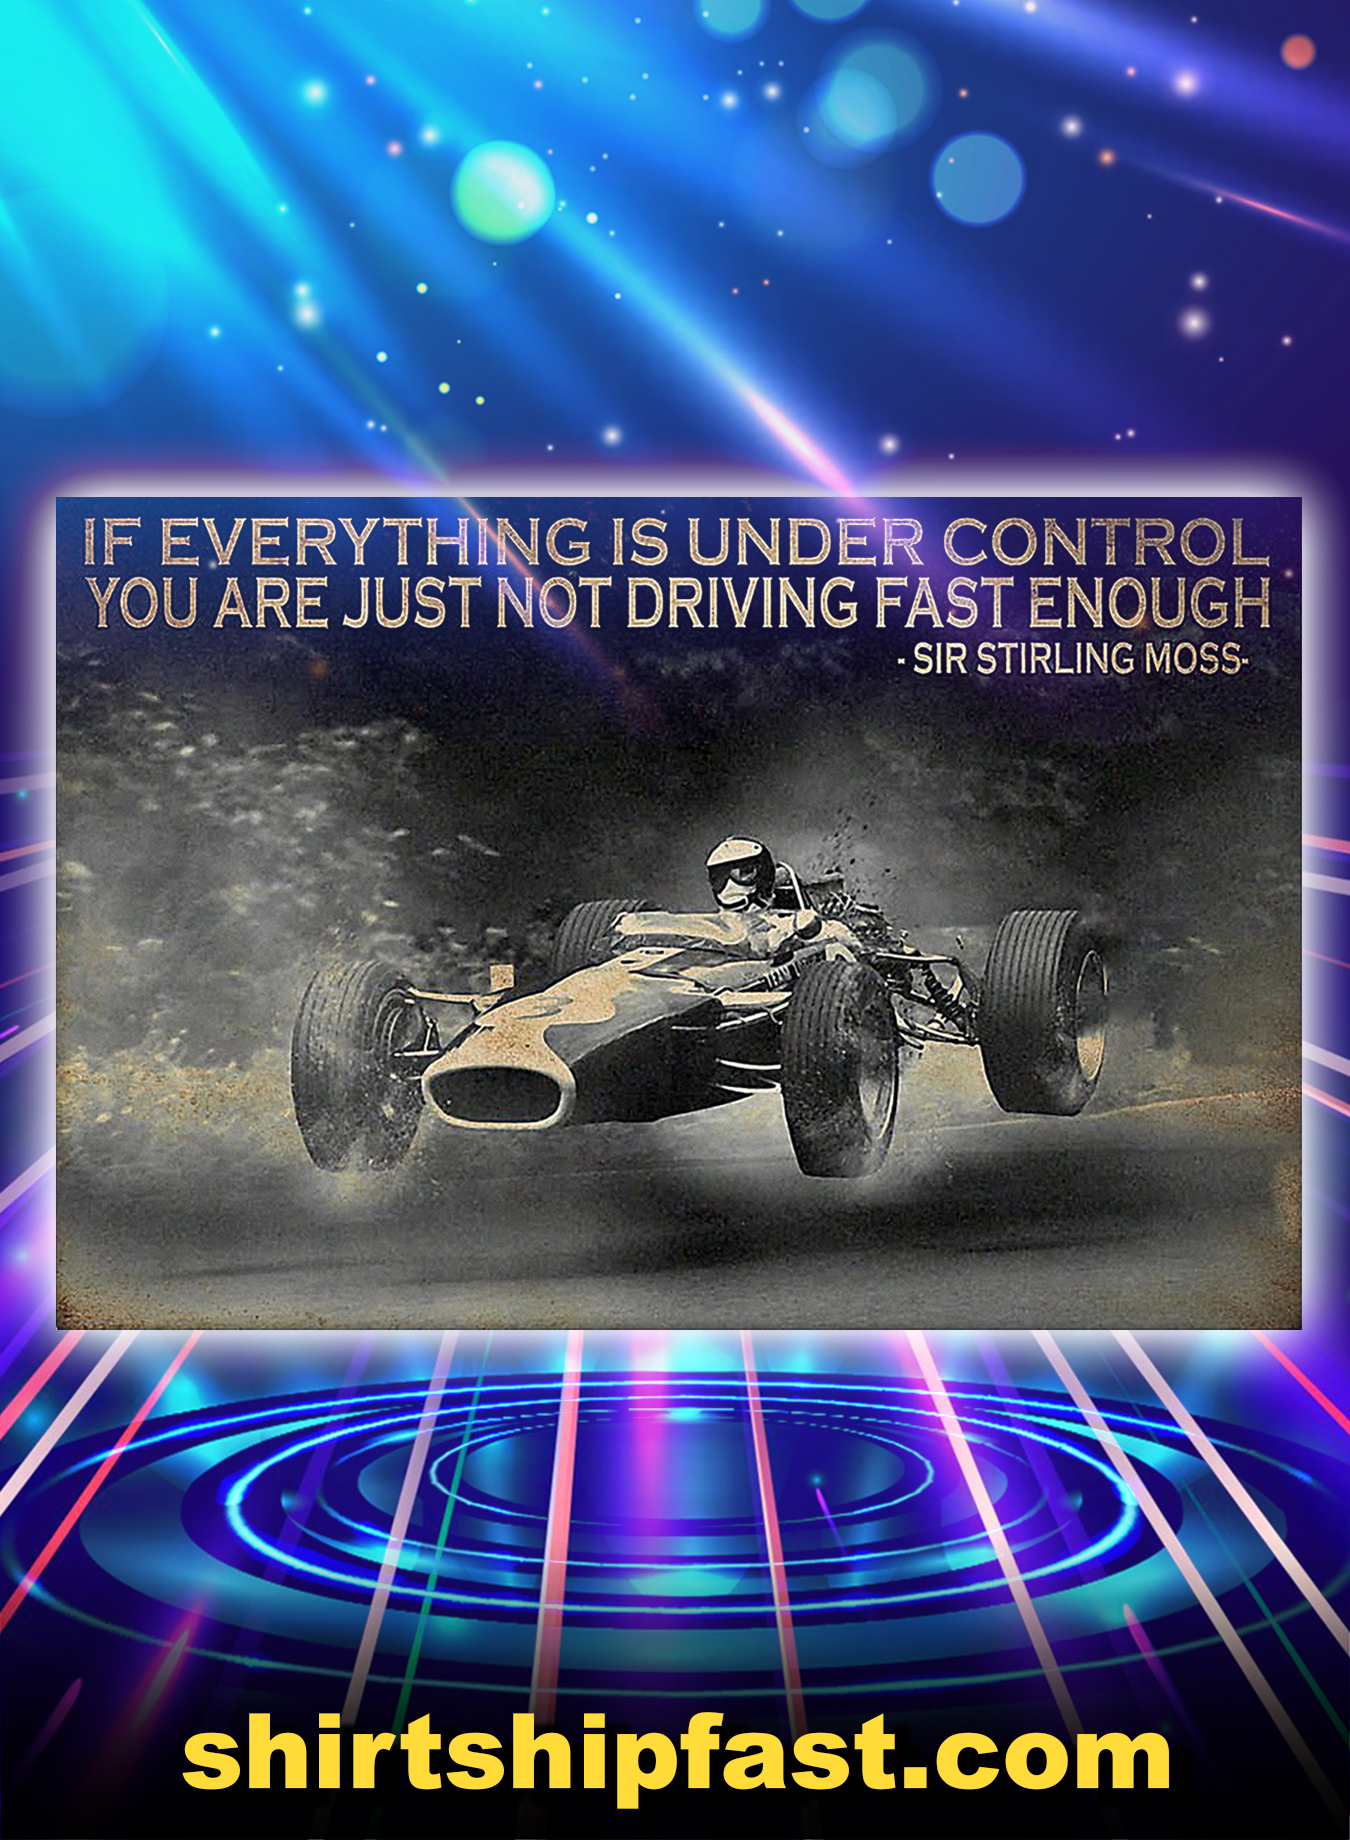 Sir stirling moss If everything is under control you are just not driving fast enough poster - A3